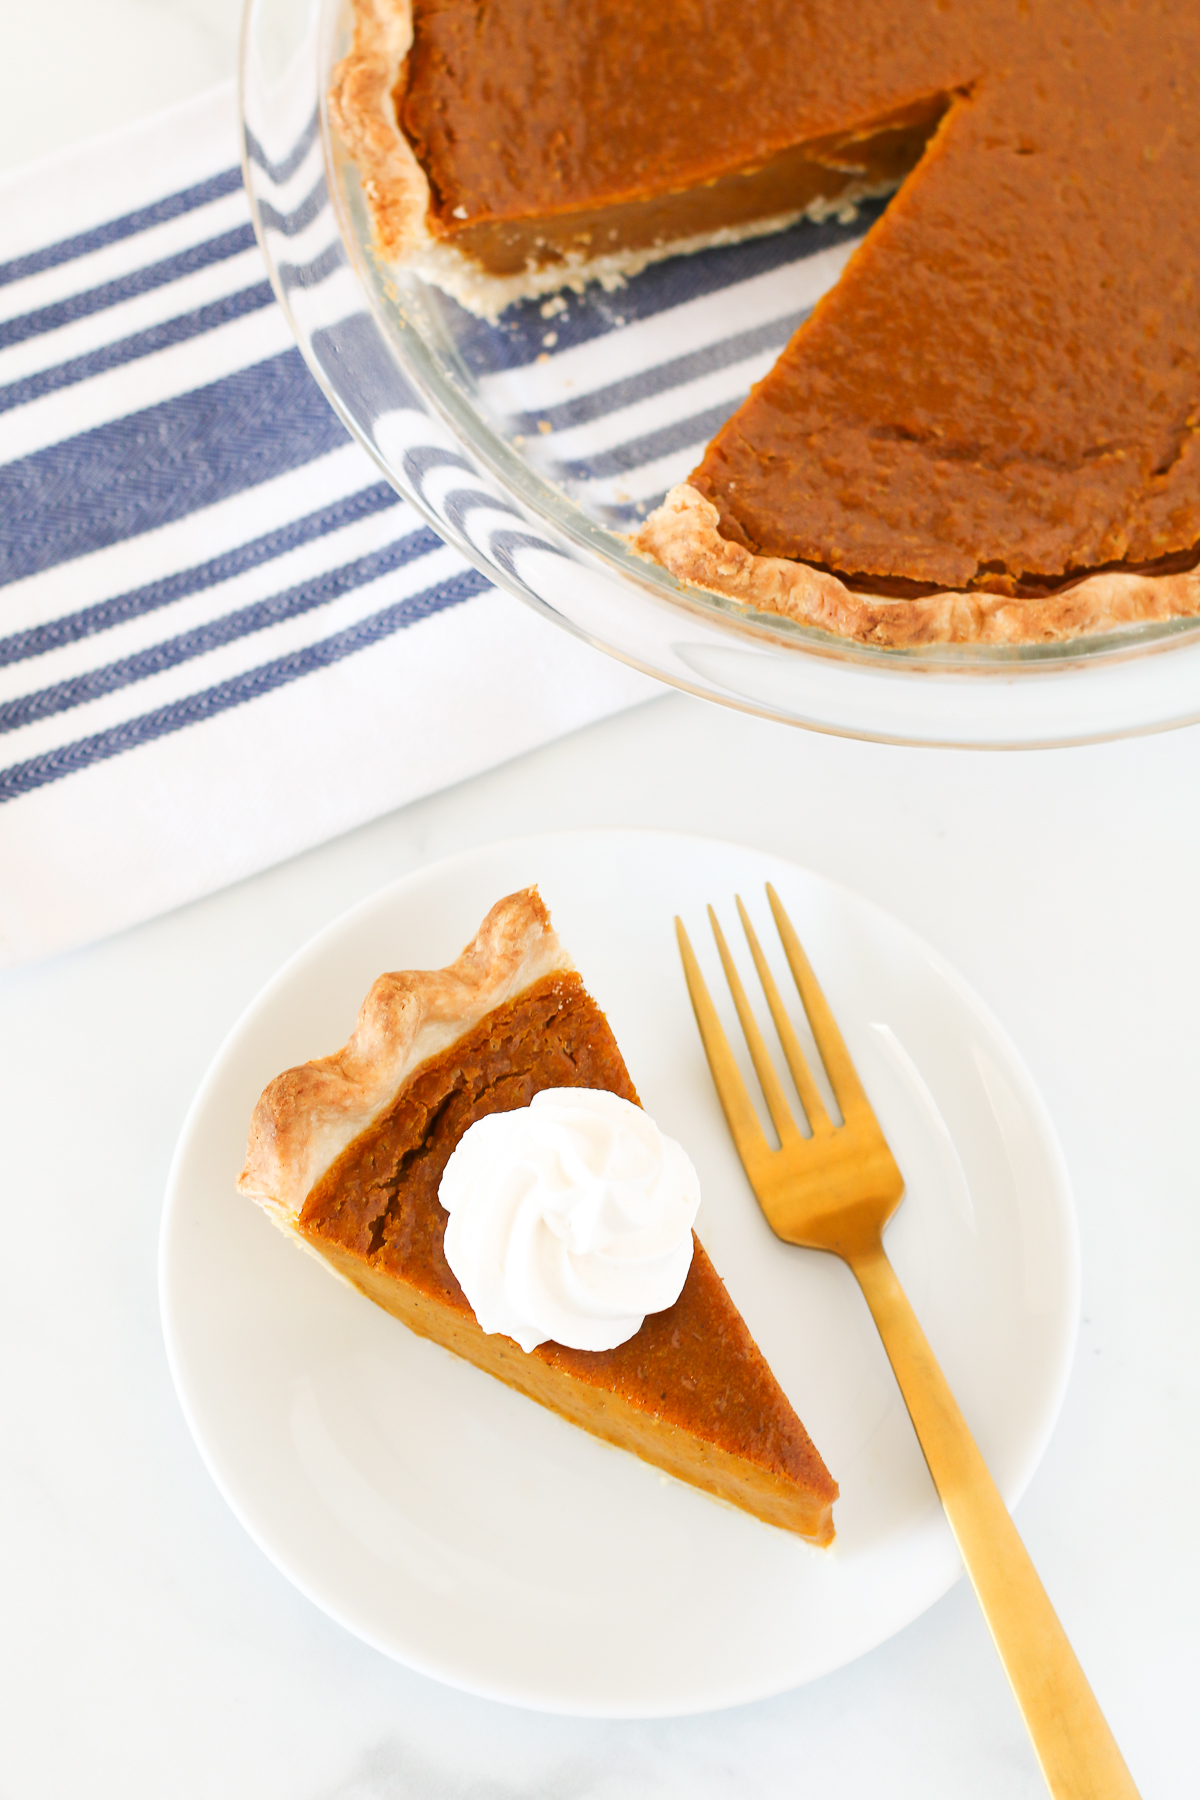 Gluten Free Vegan Pumpkin Pie. Flakey crust with a creamy, perfectly spiced pumpkin filling. This pumpkin pie is suitable for any holiday gathering!